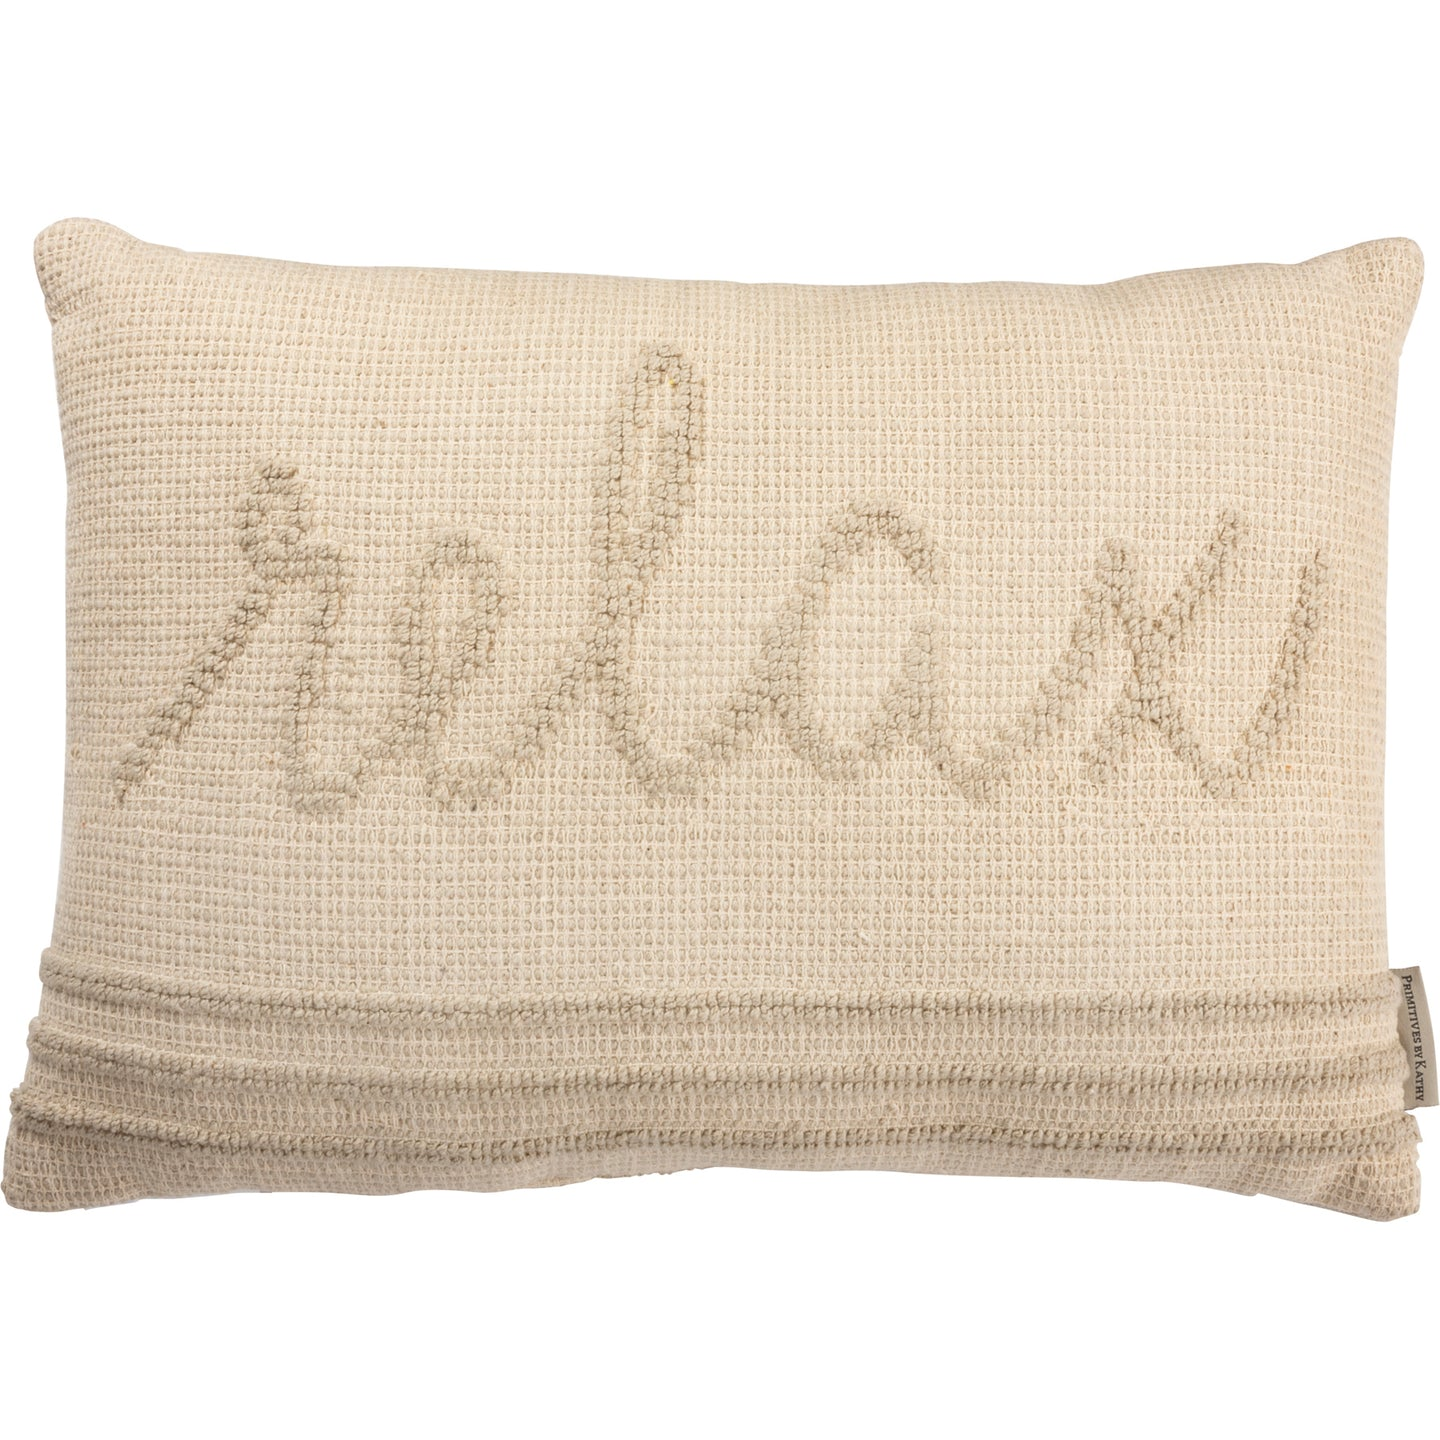 Relax Pillow - Vintage Crossroads